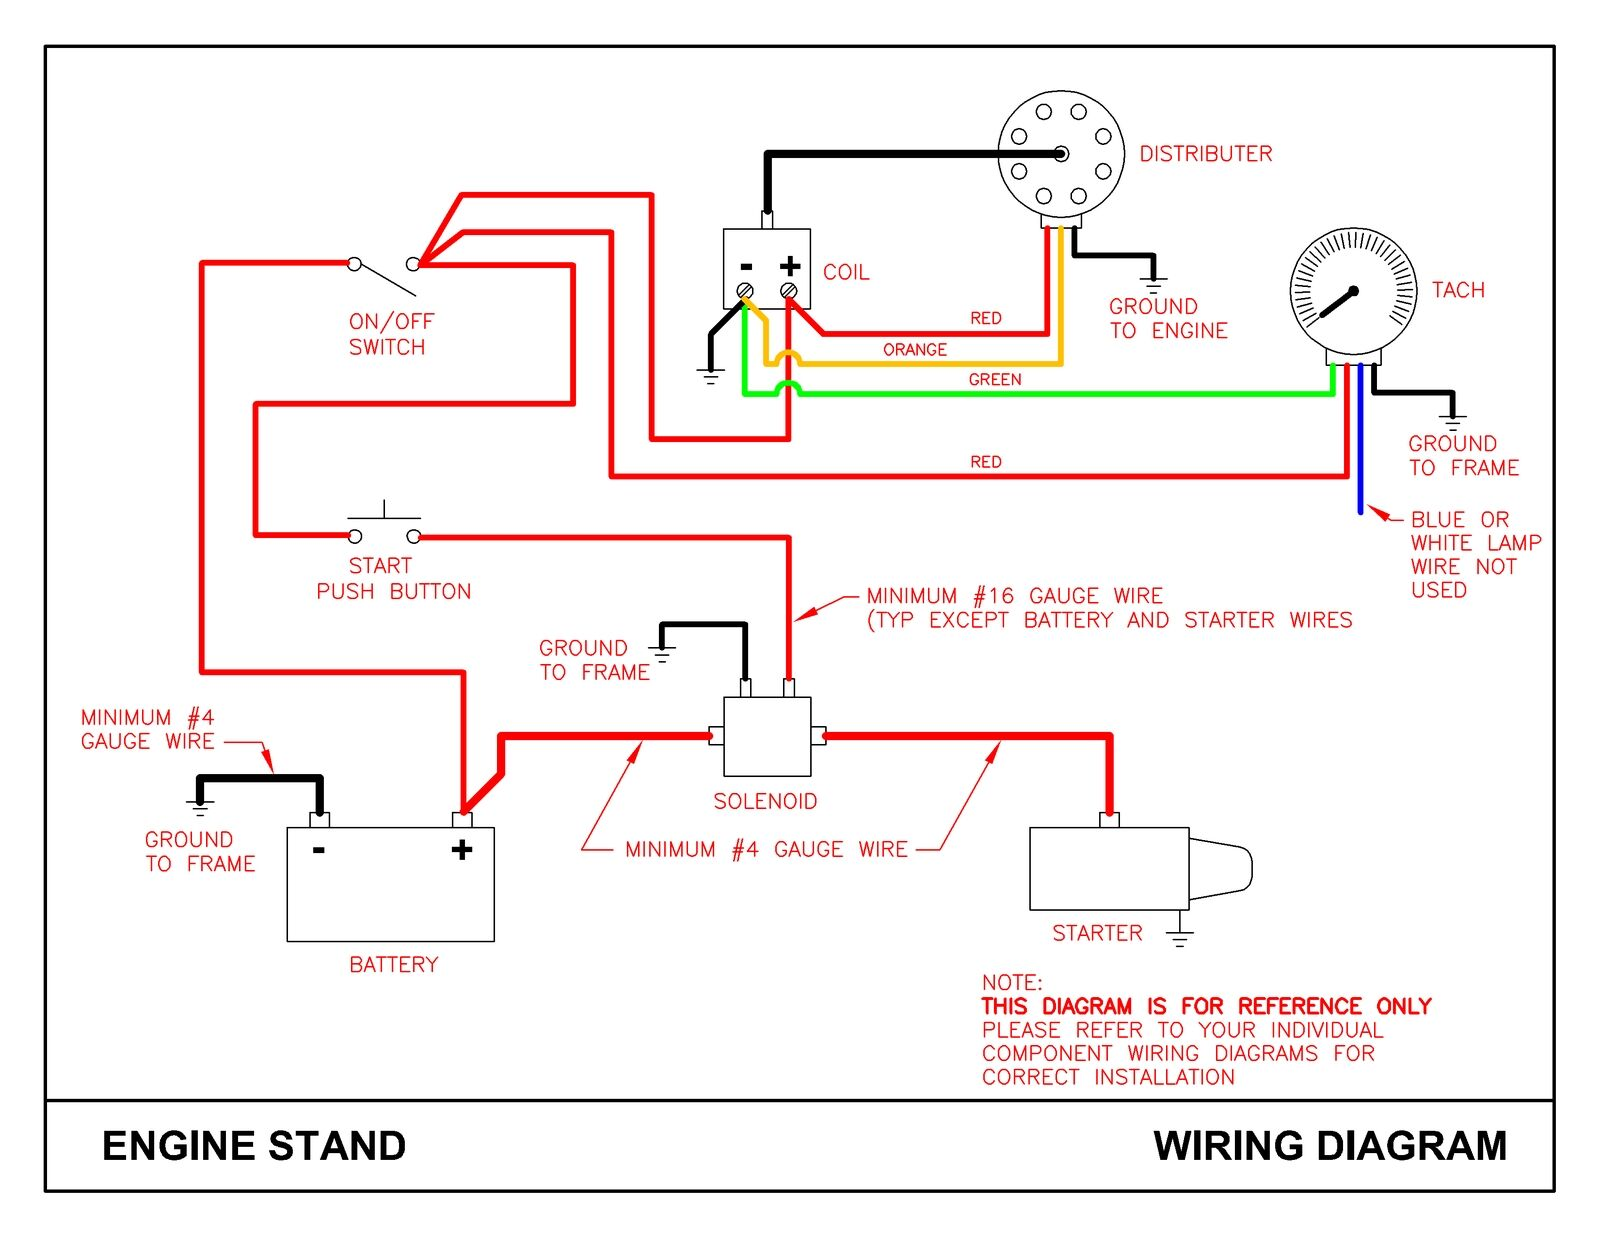 [DIAGRAM_4FR]  Engine Start / Test Stand Plans - Ford, GM, Mopar | eBay | Vw Engine Test Stand Wiring |  | eBay